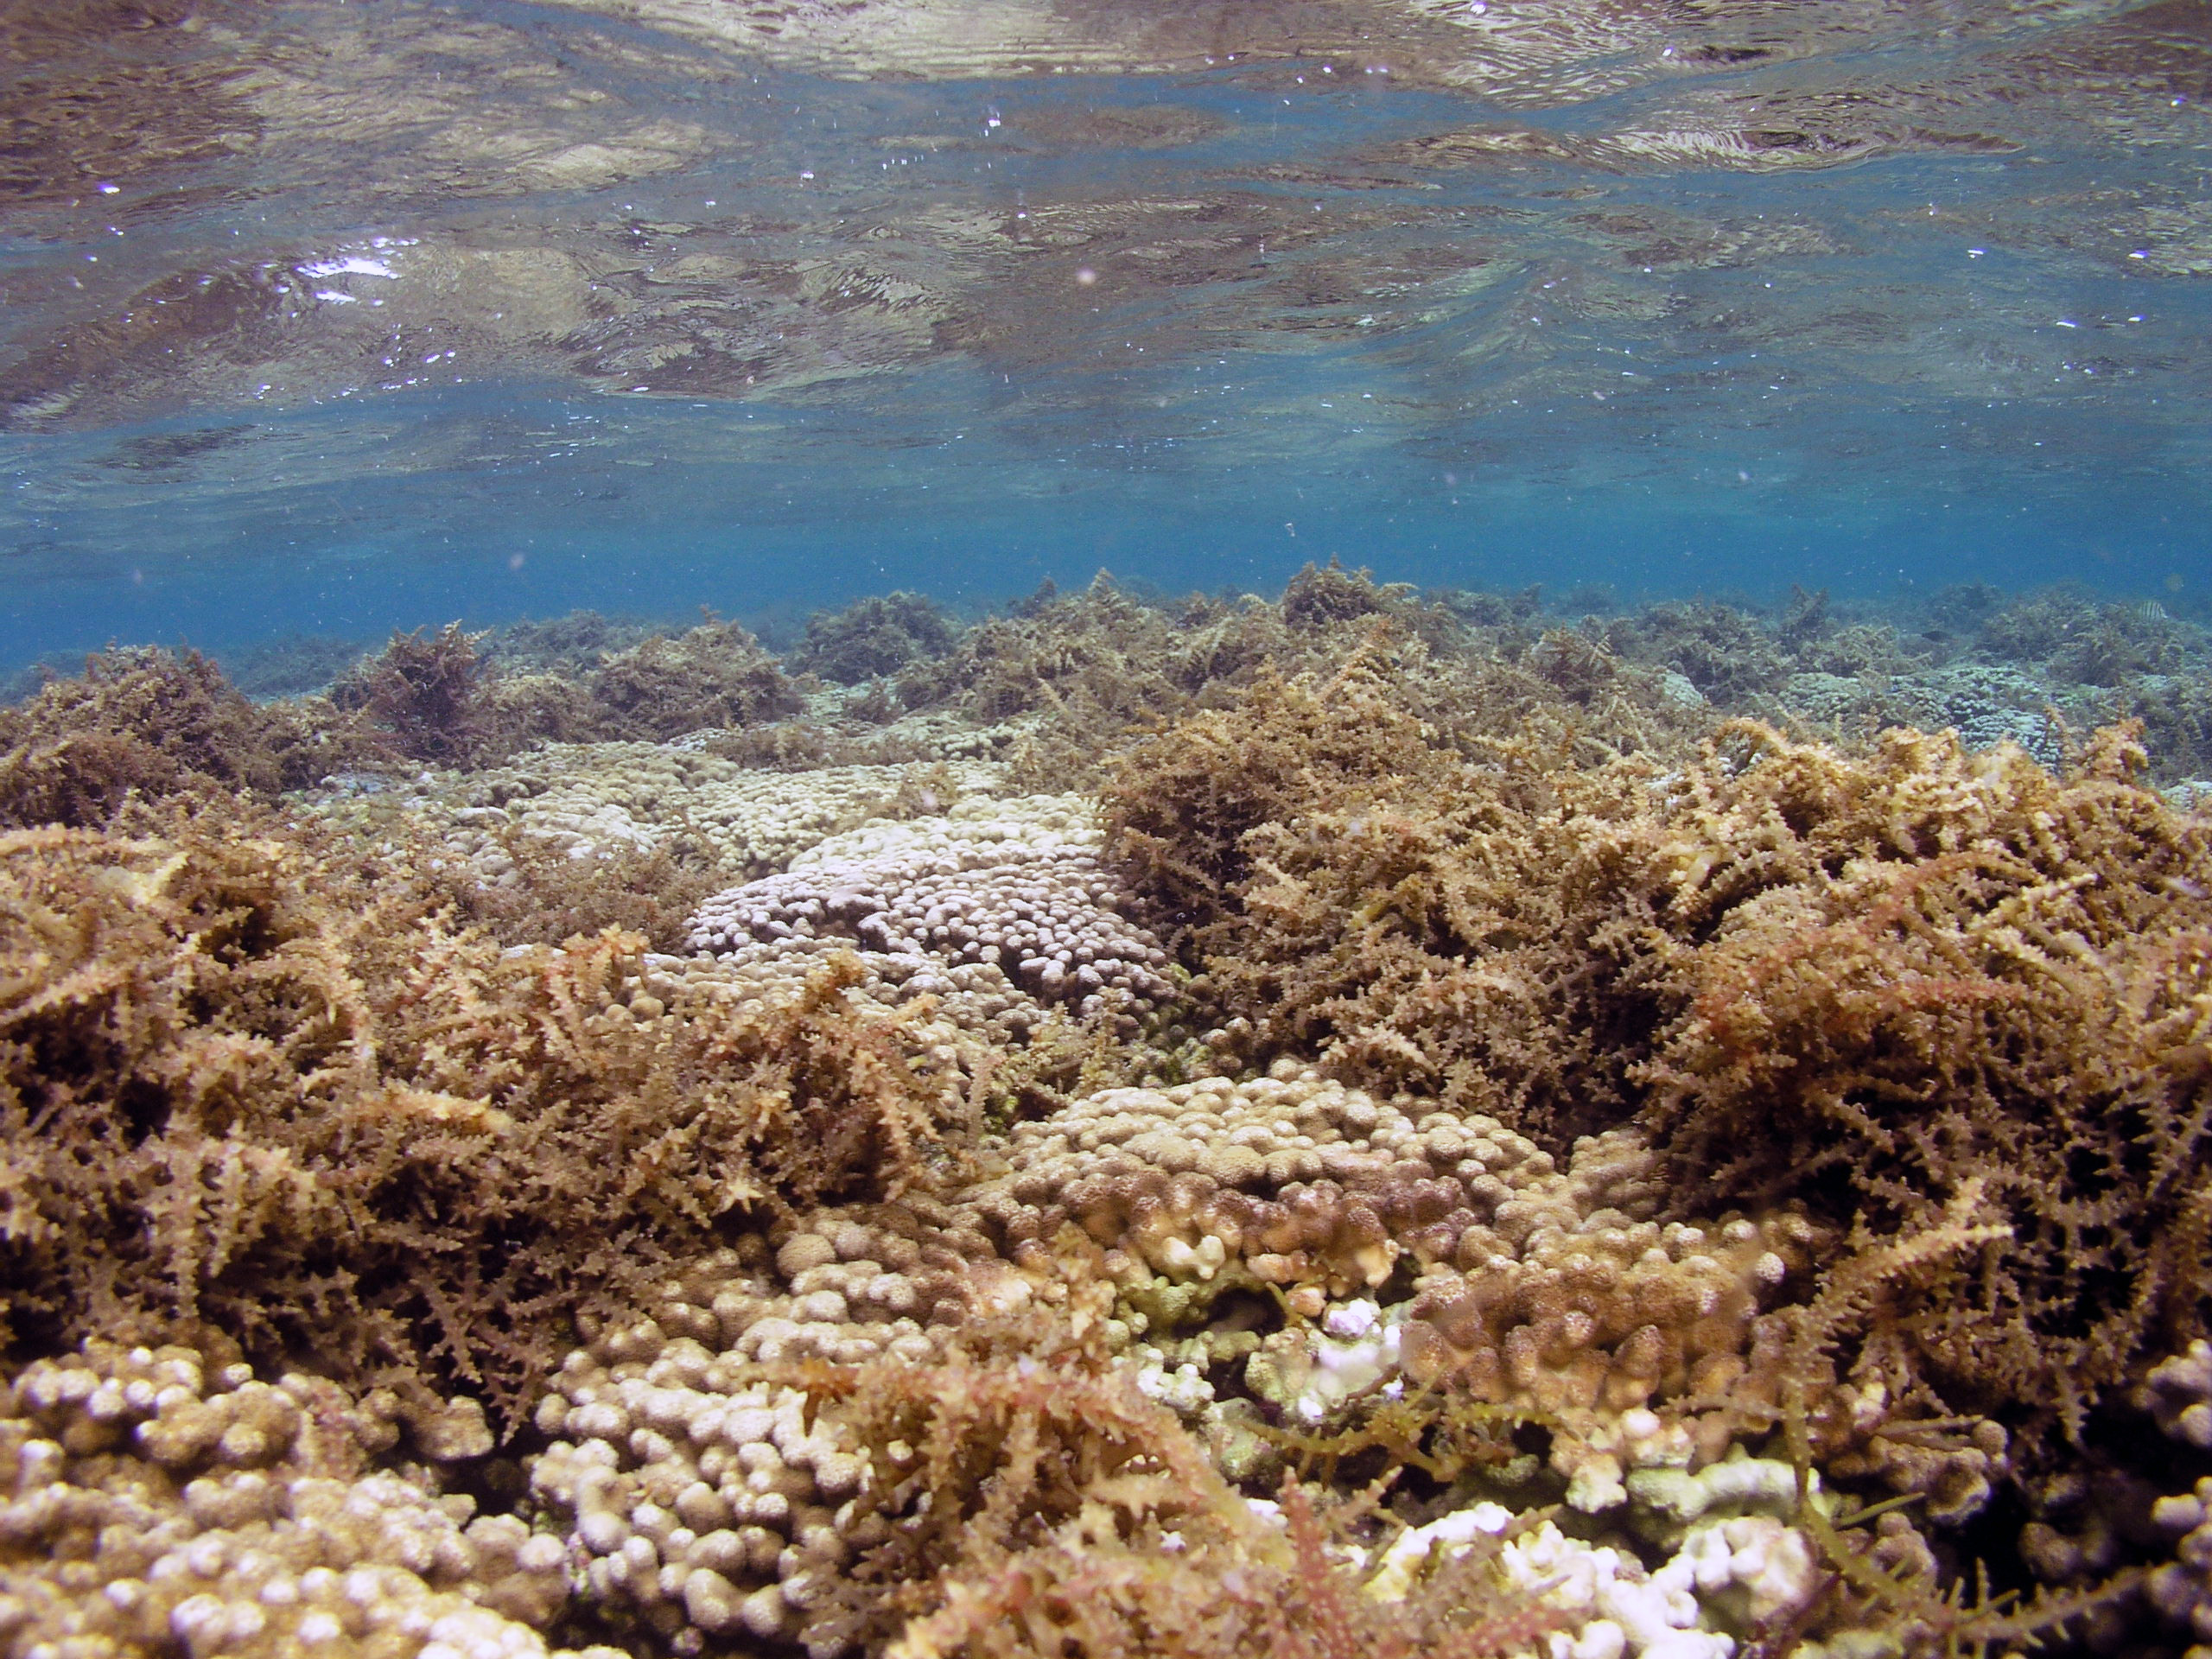 underwater image of Kaneohe Bay reef